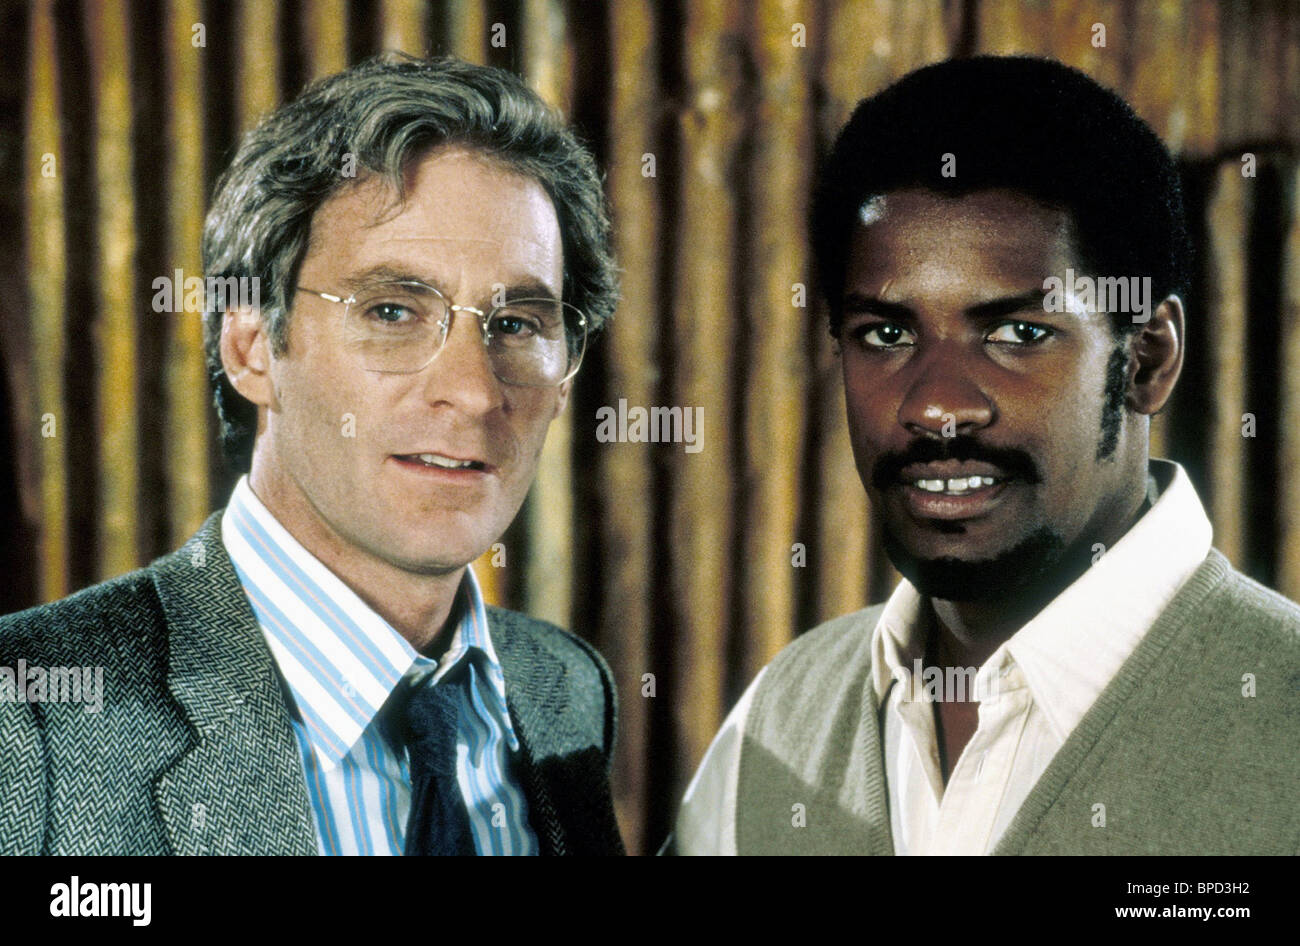 a film analysis of cry freedom directed by richard attenborough Cry freedom is a 1987 feature film directed by richard attenborough, set in the late 1970s, during the apartheid era of south africa the film was shot in ne.